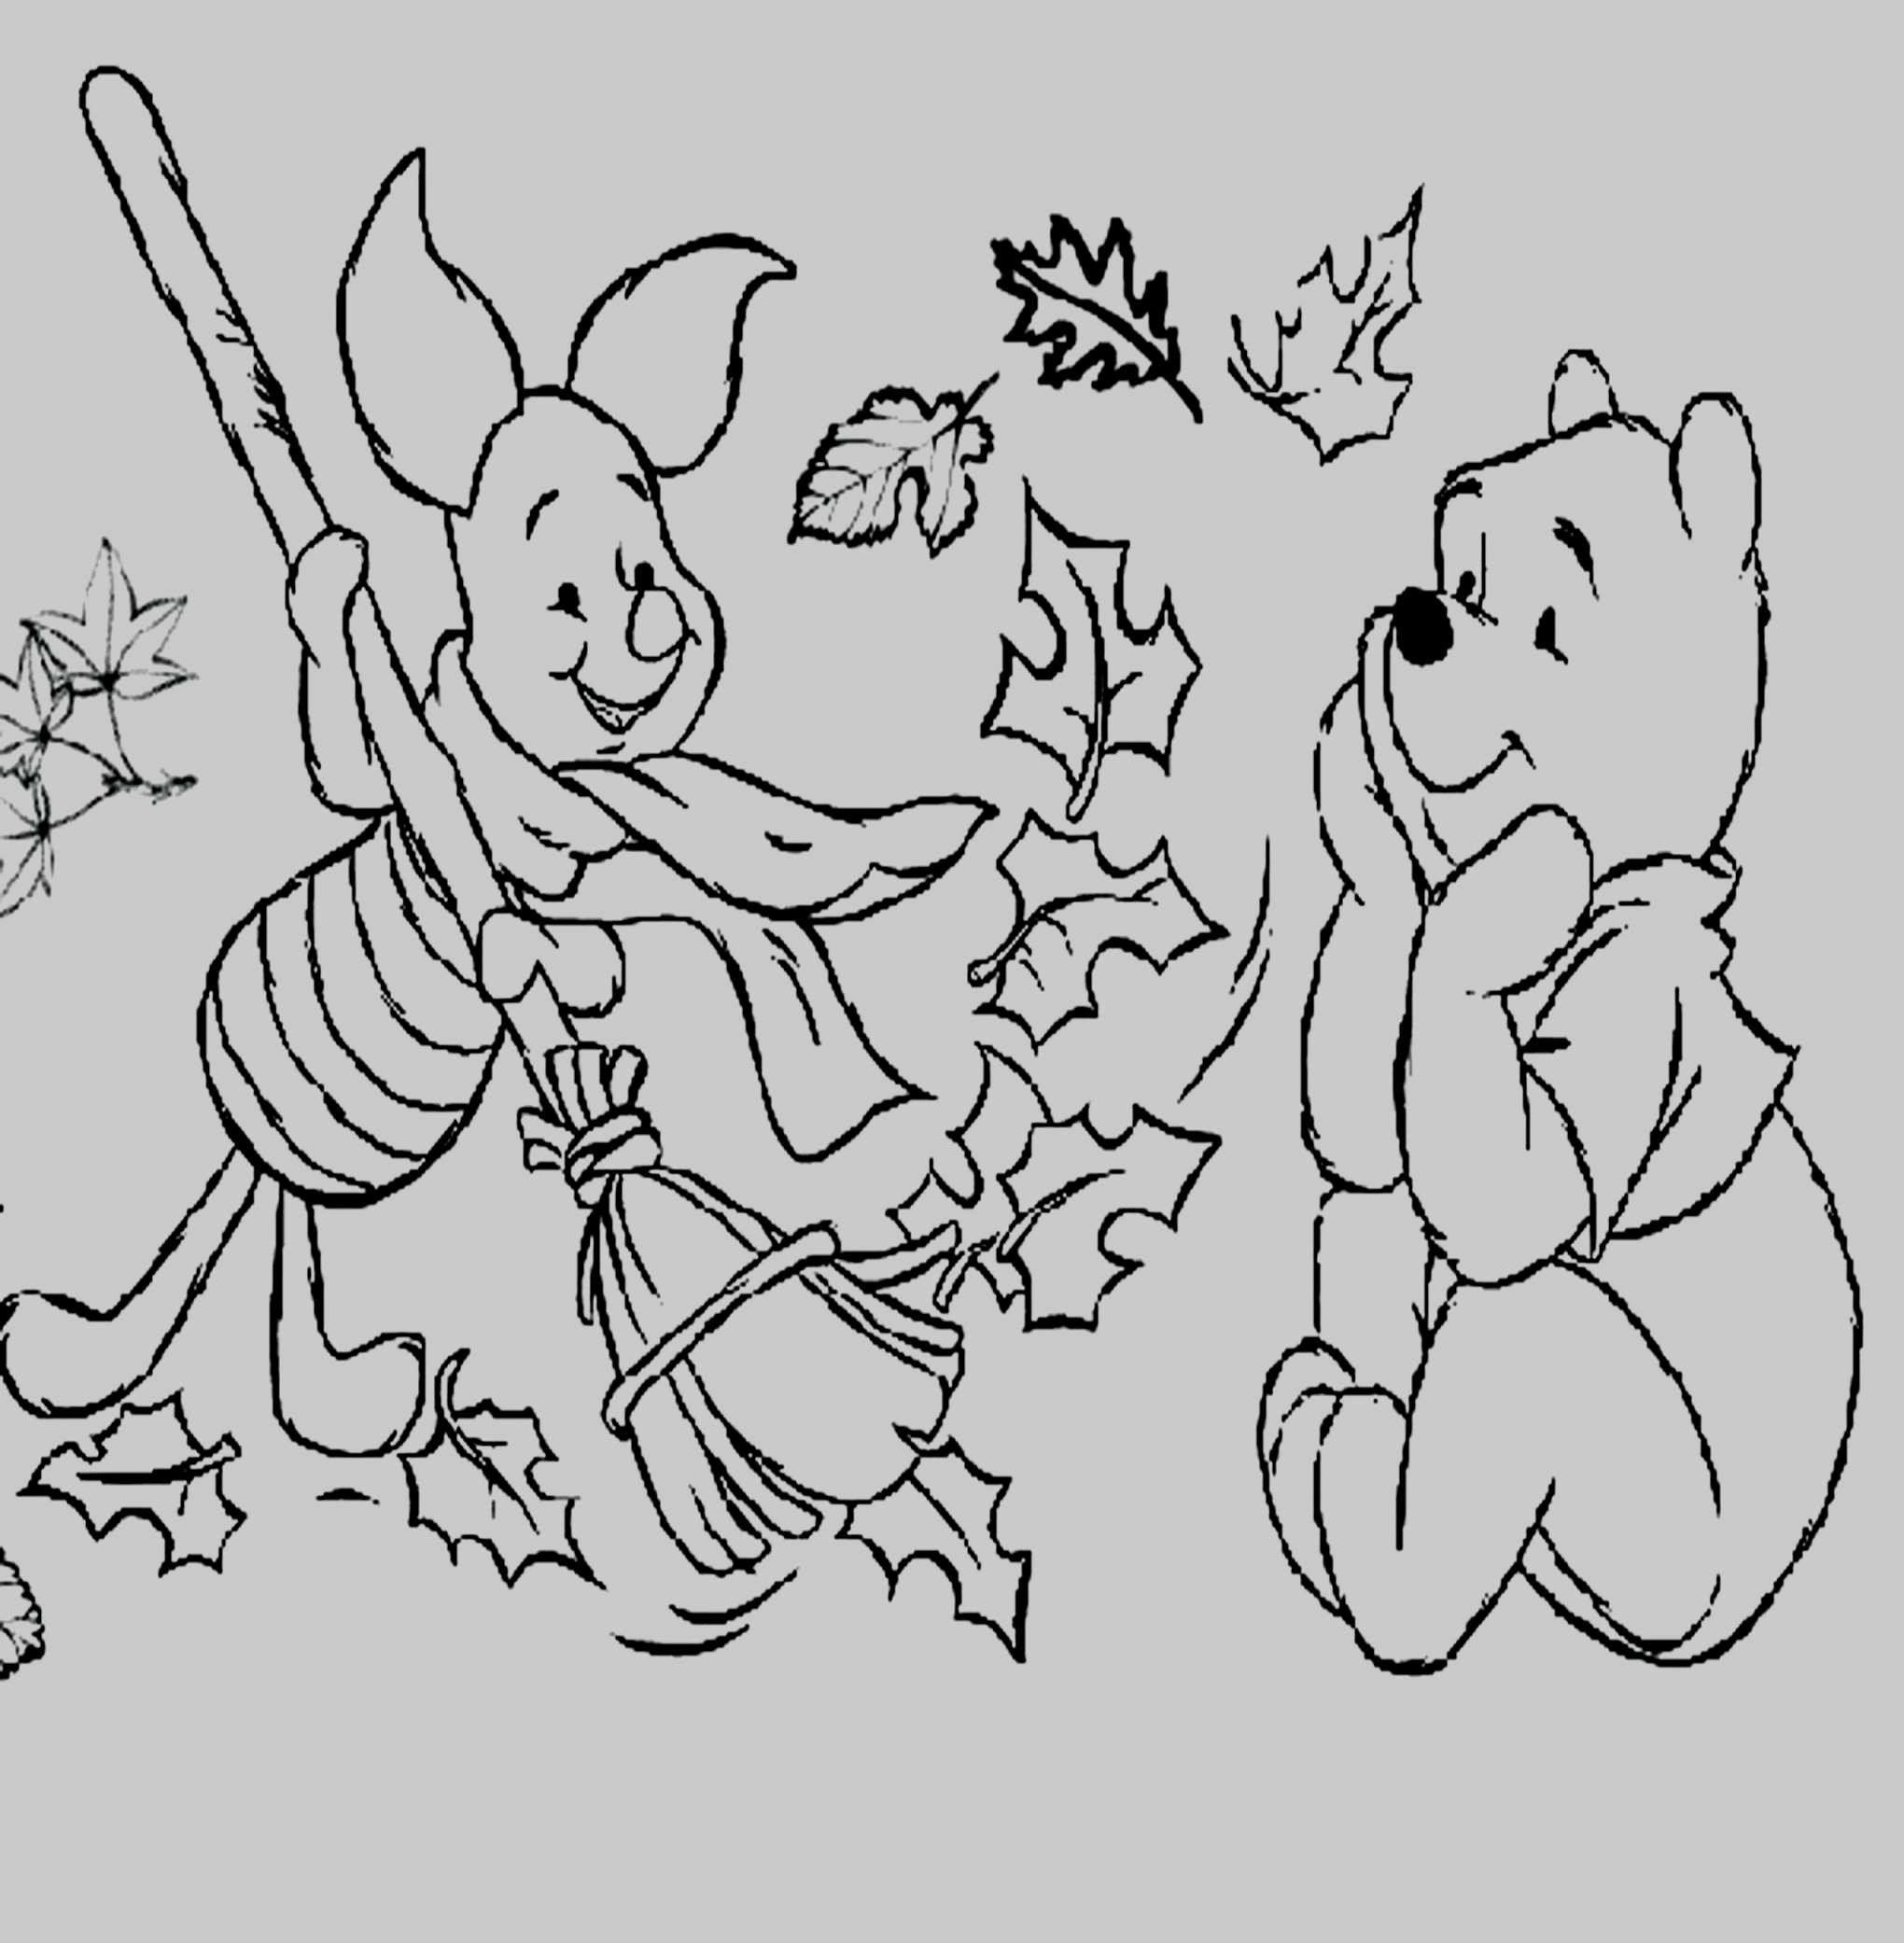 Turn Photo Into Coloring Page Elegant Angry Coloring Pages Kanta Unicorn Coloring Pages Animal Coloring Pages Halloween Coloring Pages